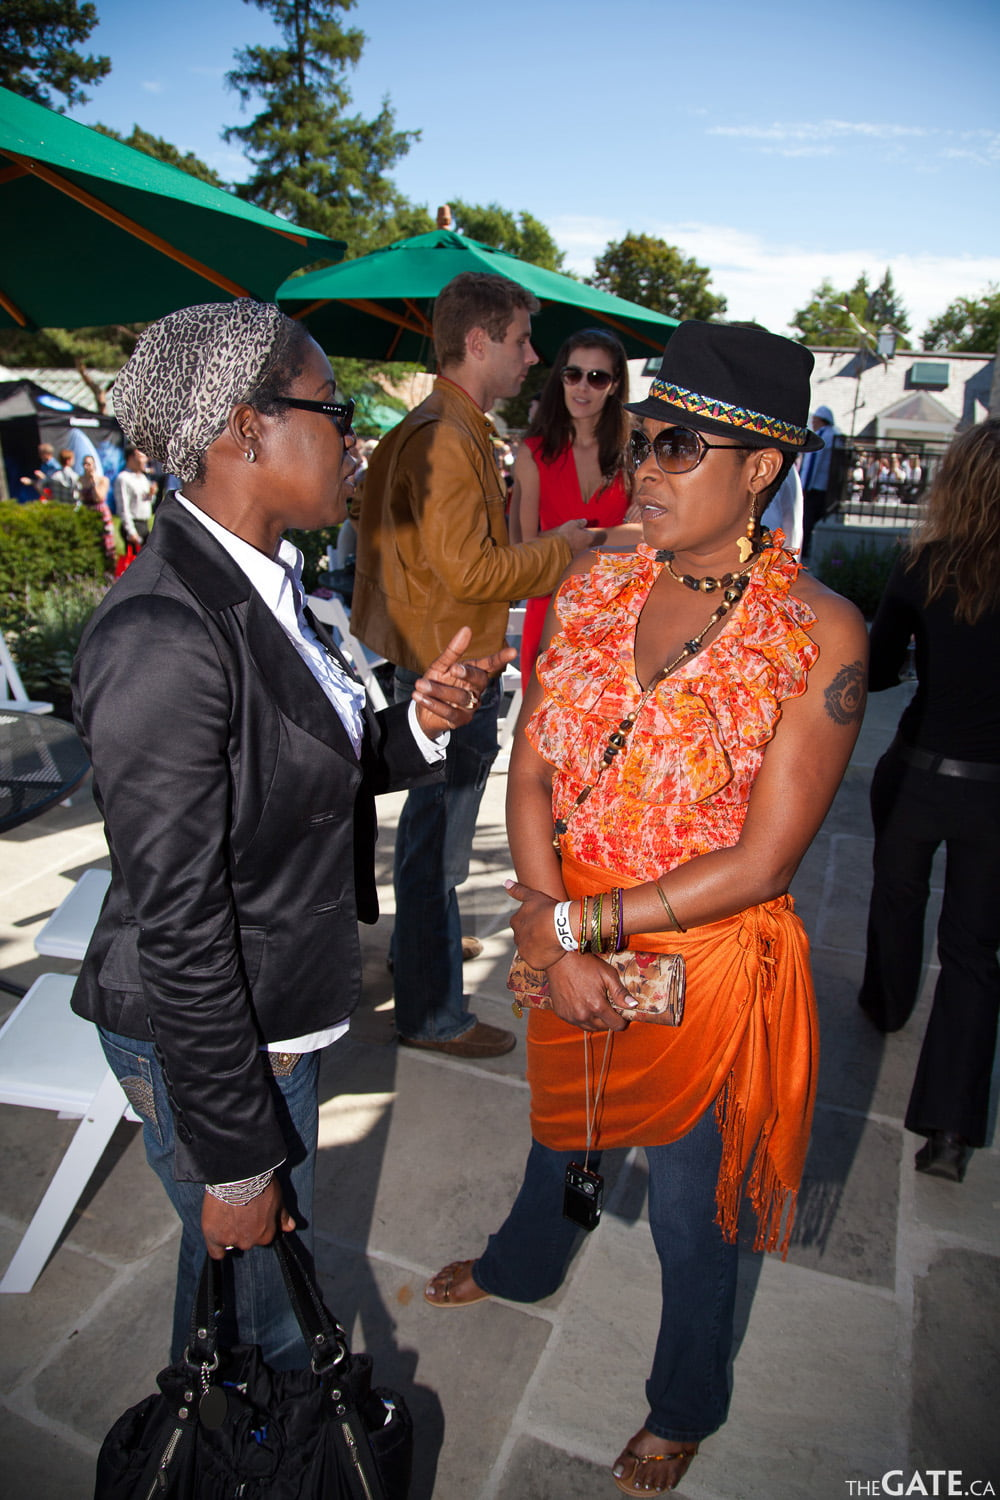 Patricia Scarlett and Sharon Marley